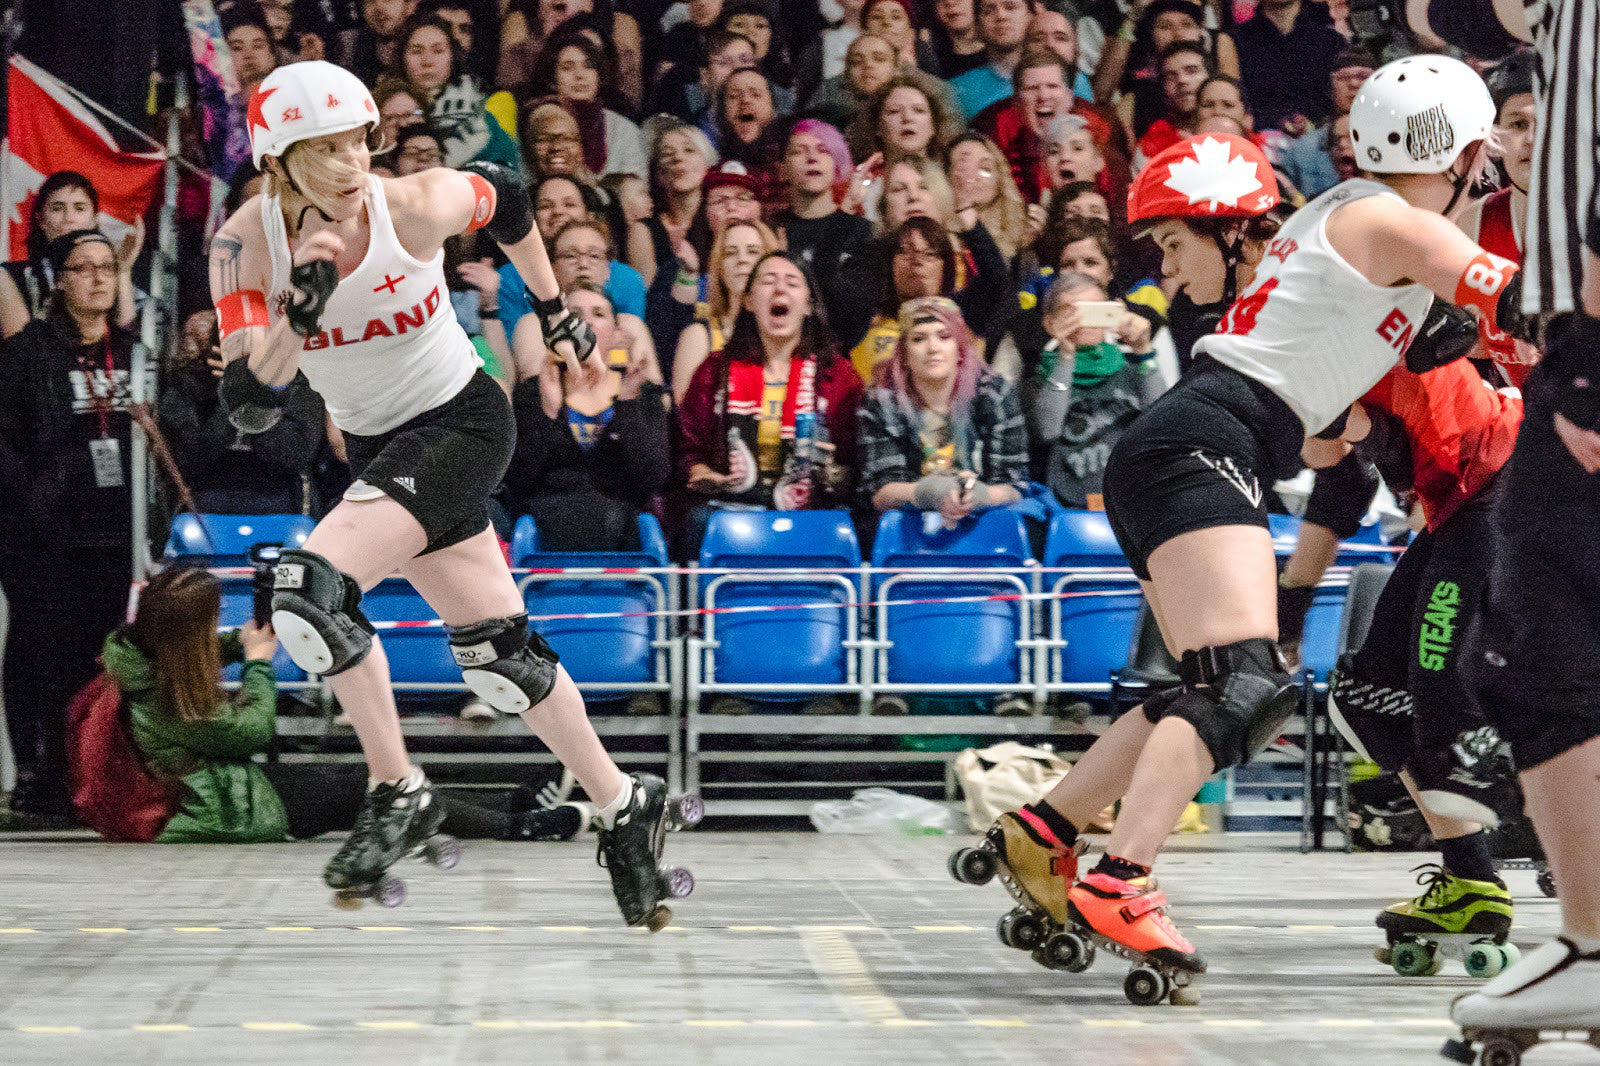 A moment in time composed to tell a story that went down during the Women's Roller Derby World Cup in 2018. Team England vs Team Canada: the English jammer Alex Wilde exits the pack running, while Canadian jammer and STEAKS® CRW alumni Falcon Punch is still stuck in the English wall, held – by what seems to be – the last blocker. Alex has her eye on the pack: to check if she is being hunted down or to check to see where Falcon is? That part of the story remains untold. ©Anja Wettergren